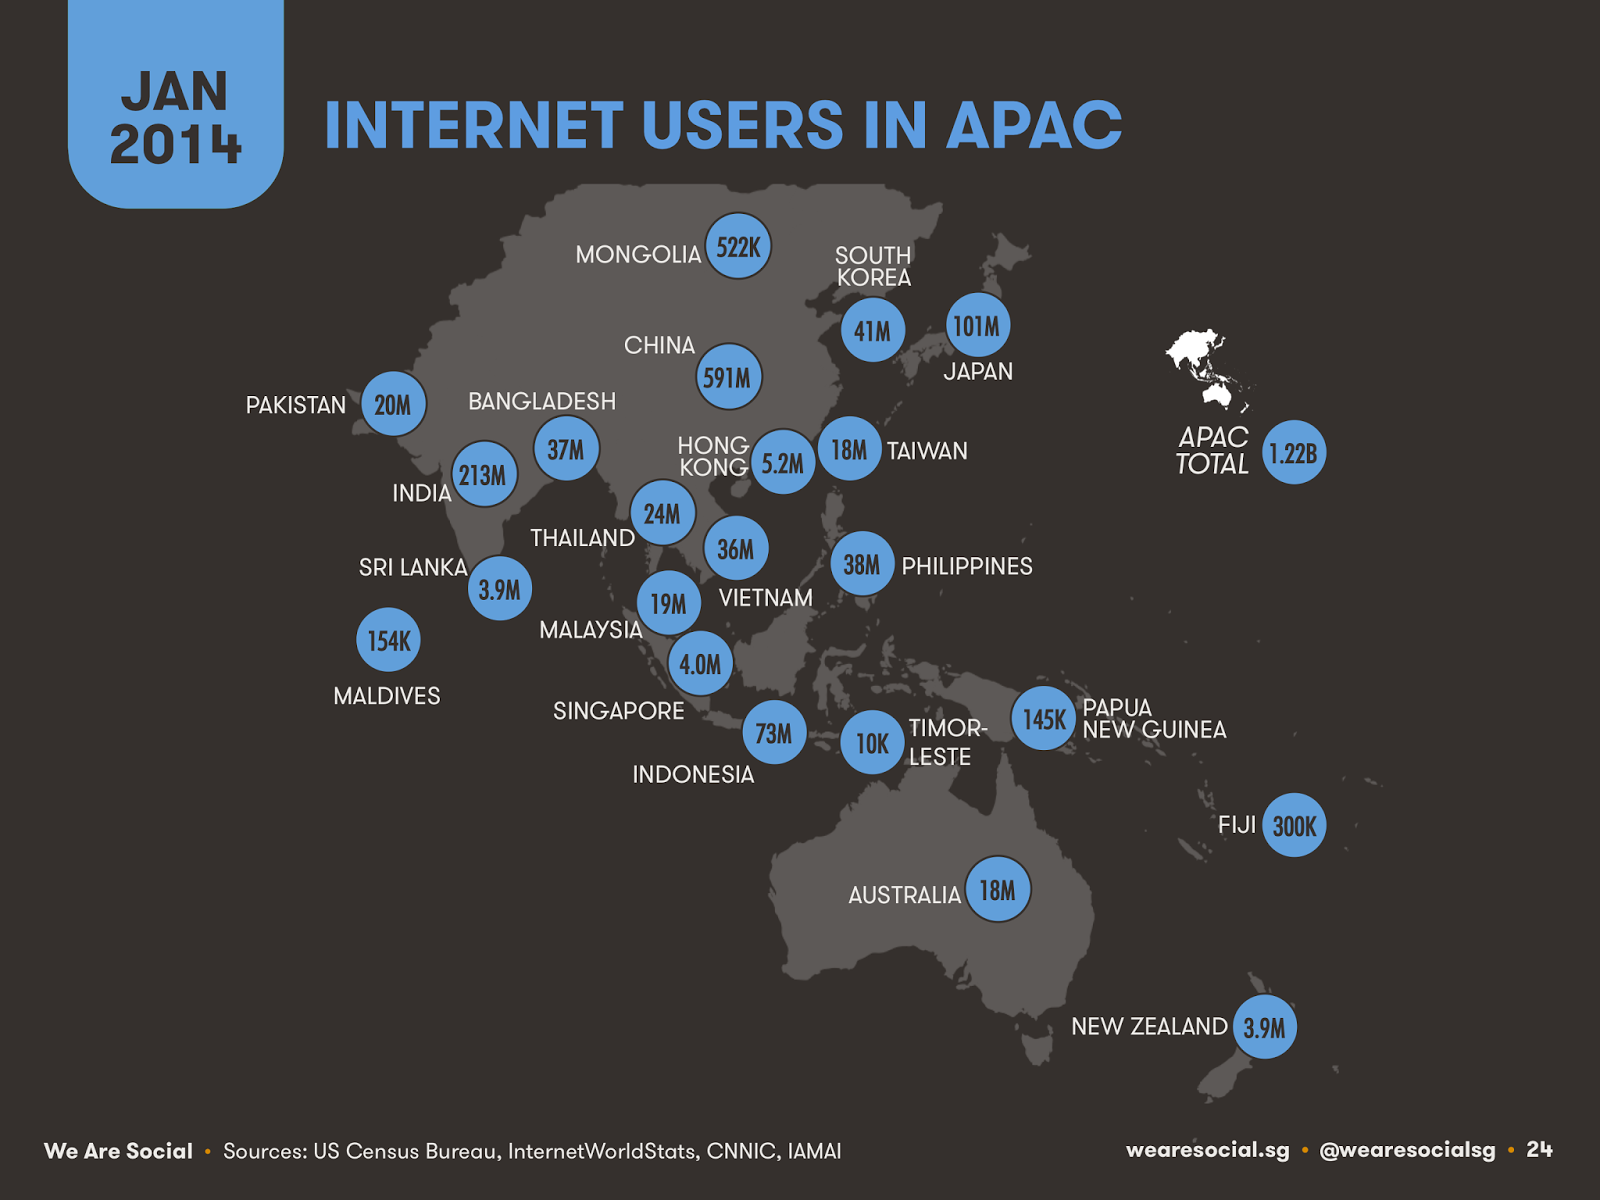 Asia Pacific Internet Users 2014